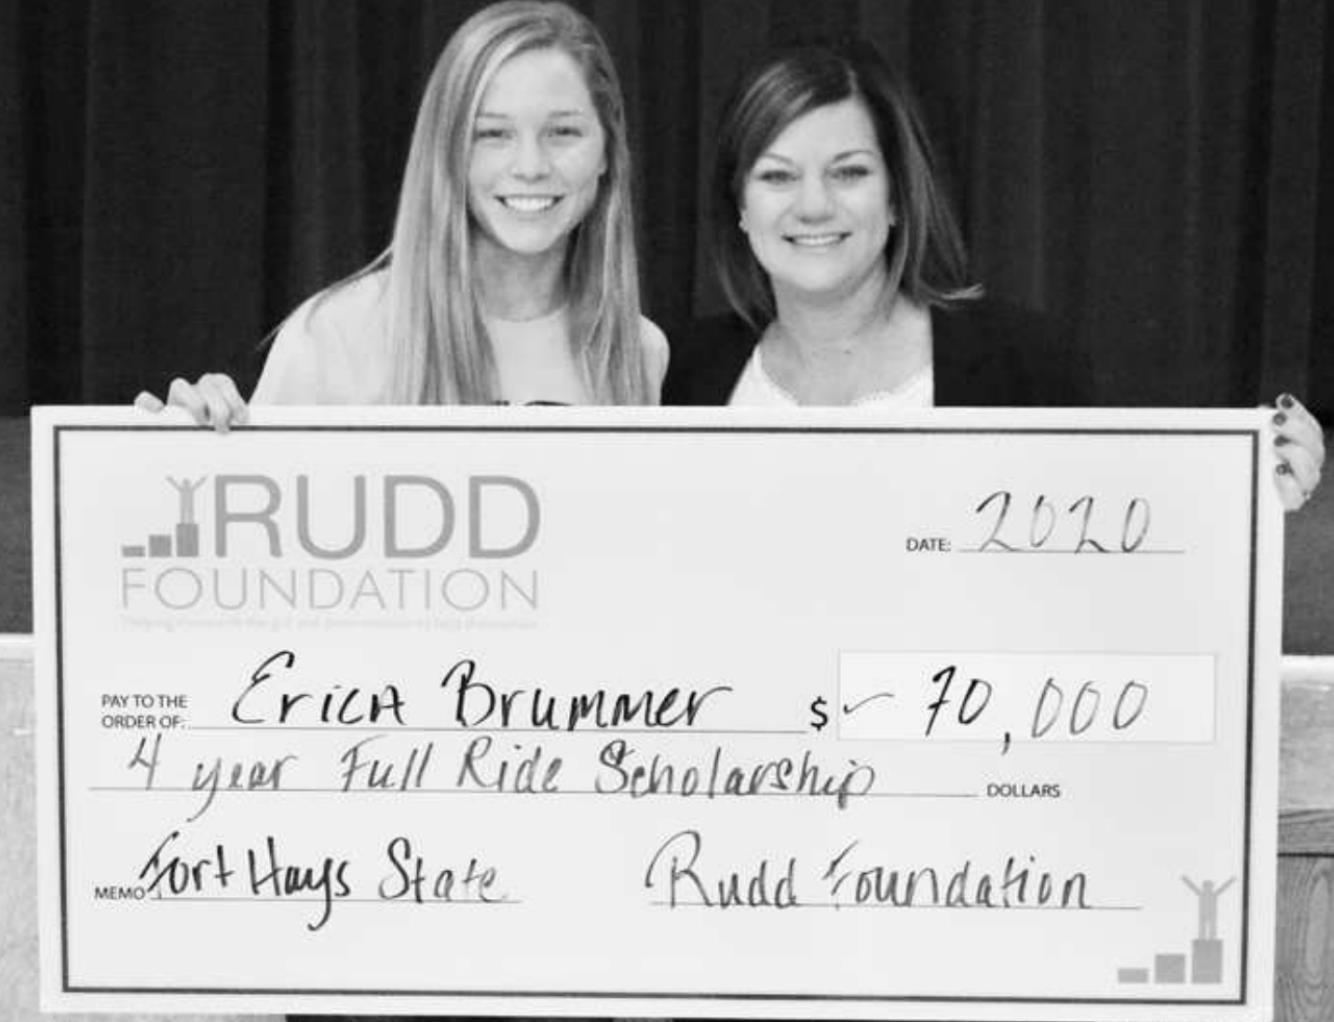 Erica Brummer (left) of Tipton Catholic High School has been named a Rudd Scholarship recipient to receive a full ride to Fort Hays State University next year.